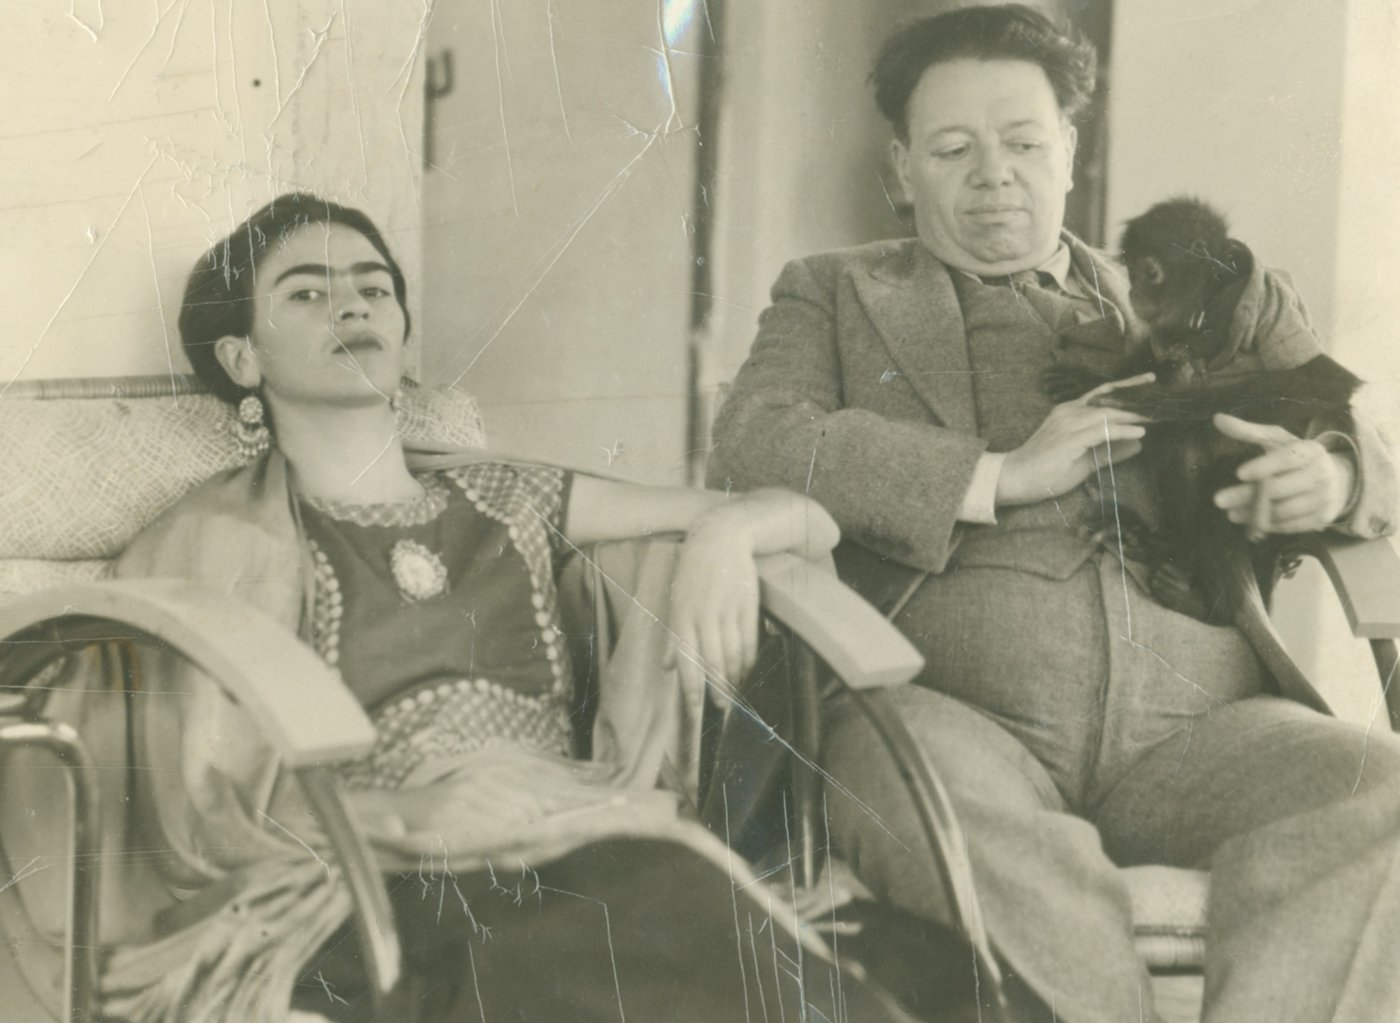 Photographer unknown, 'Frida and Diego with Fulang Chang', 1937